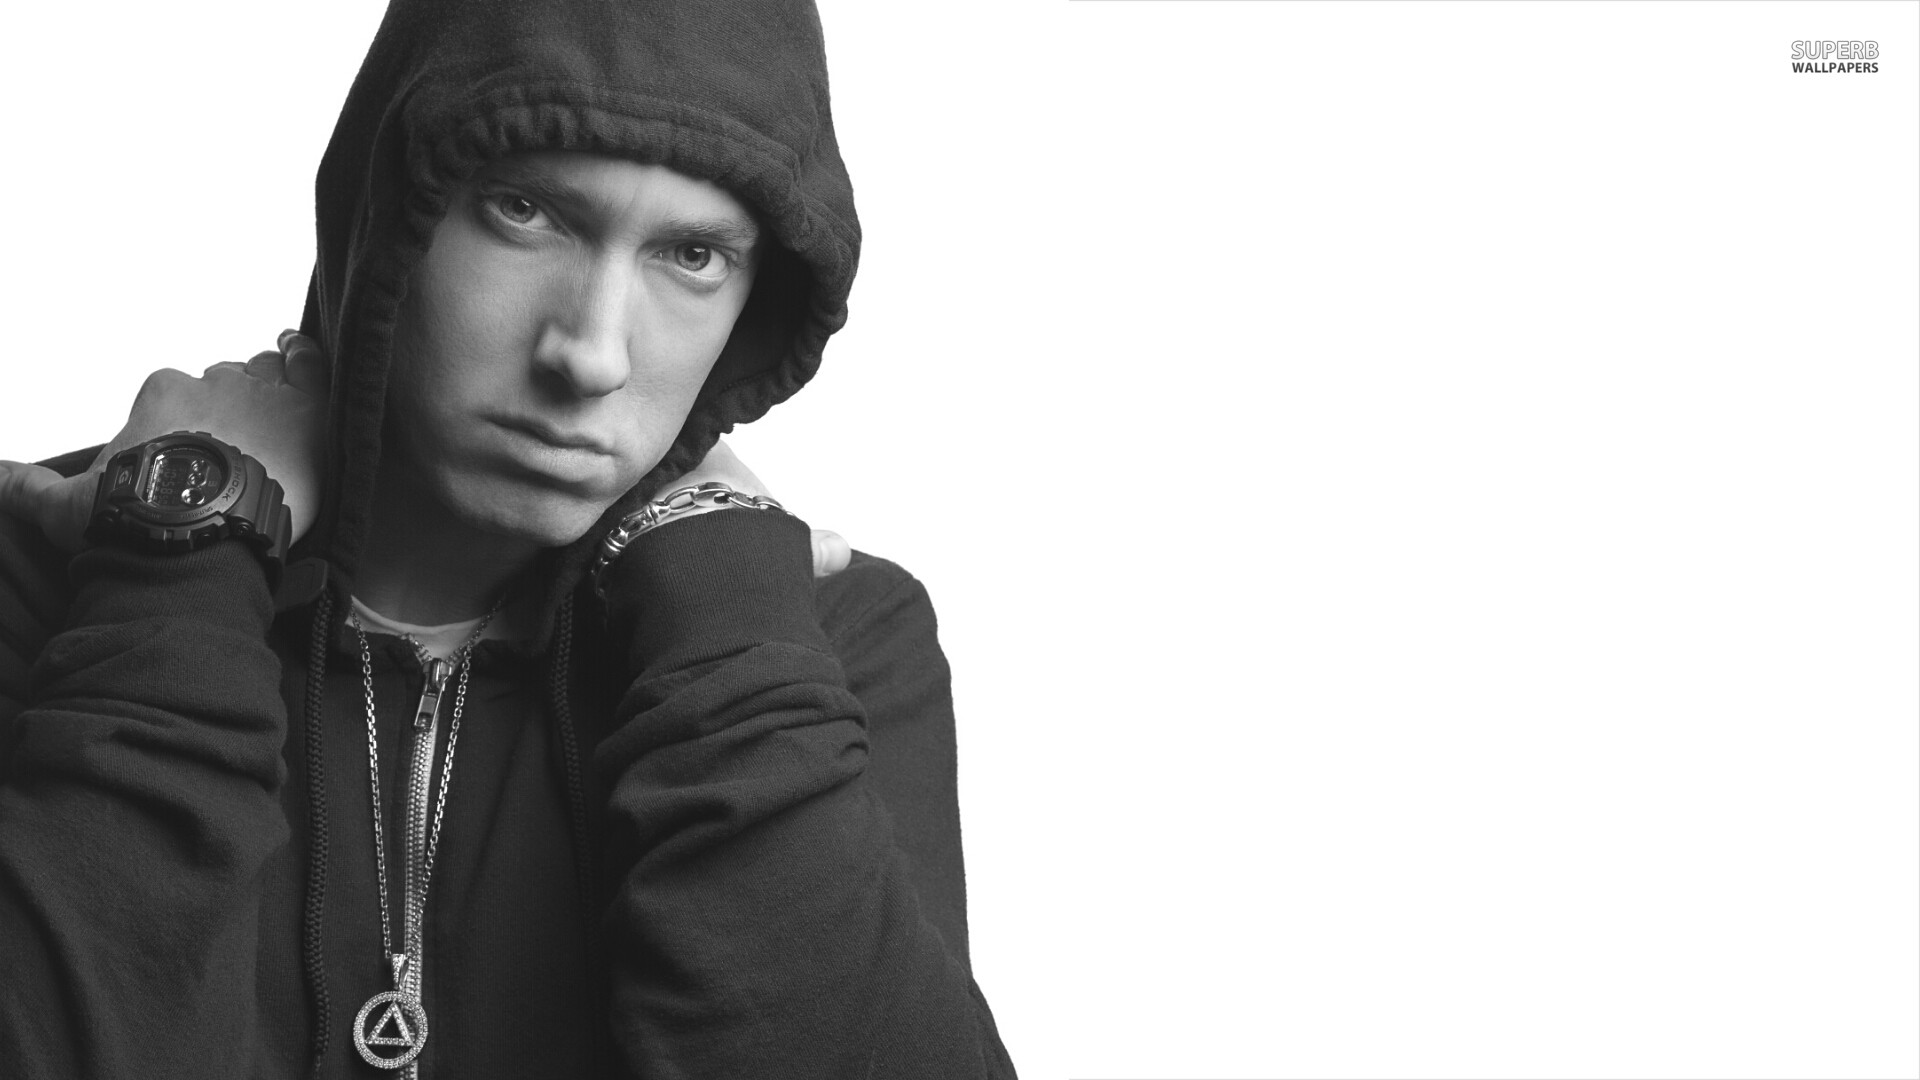 eminem wallpapers iphone 5s ✓ many hd wallpaper